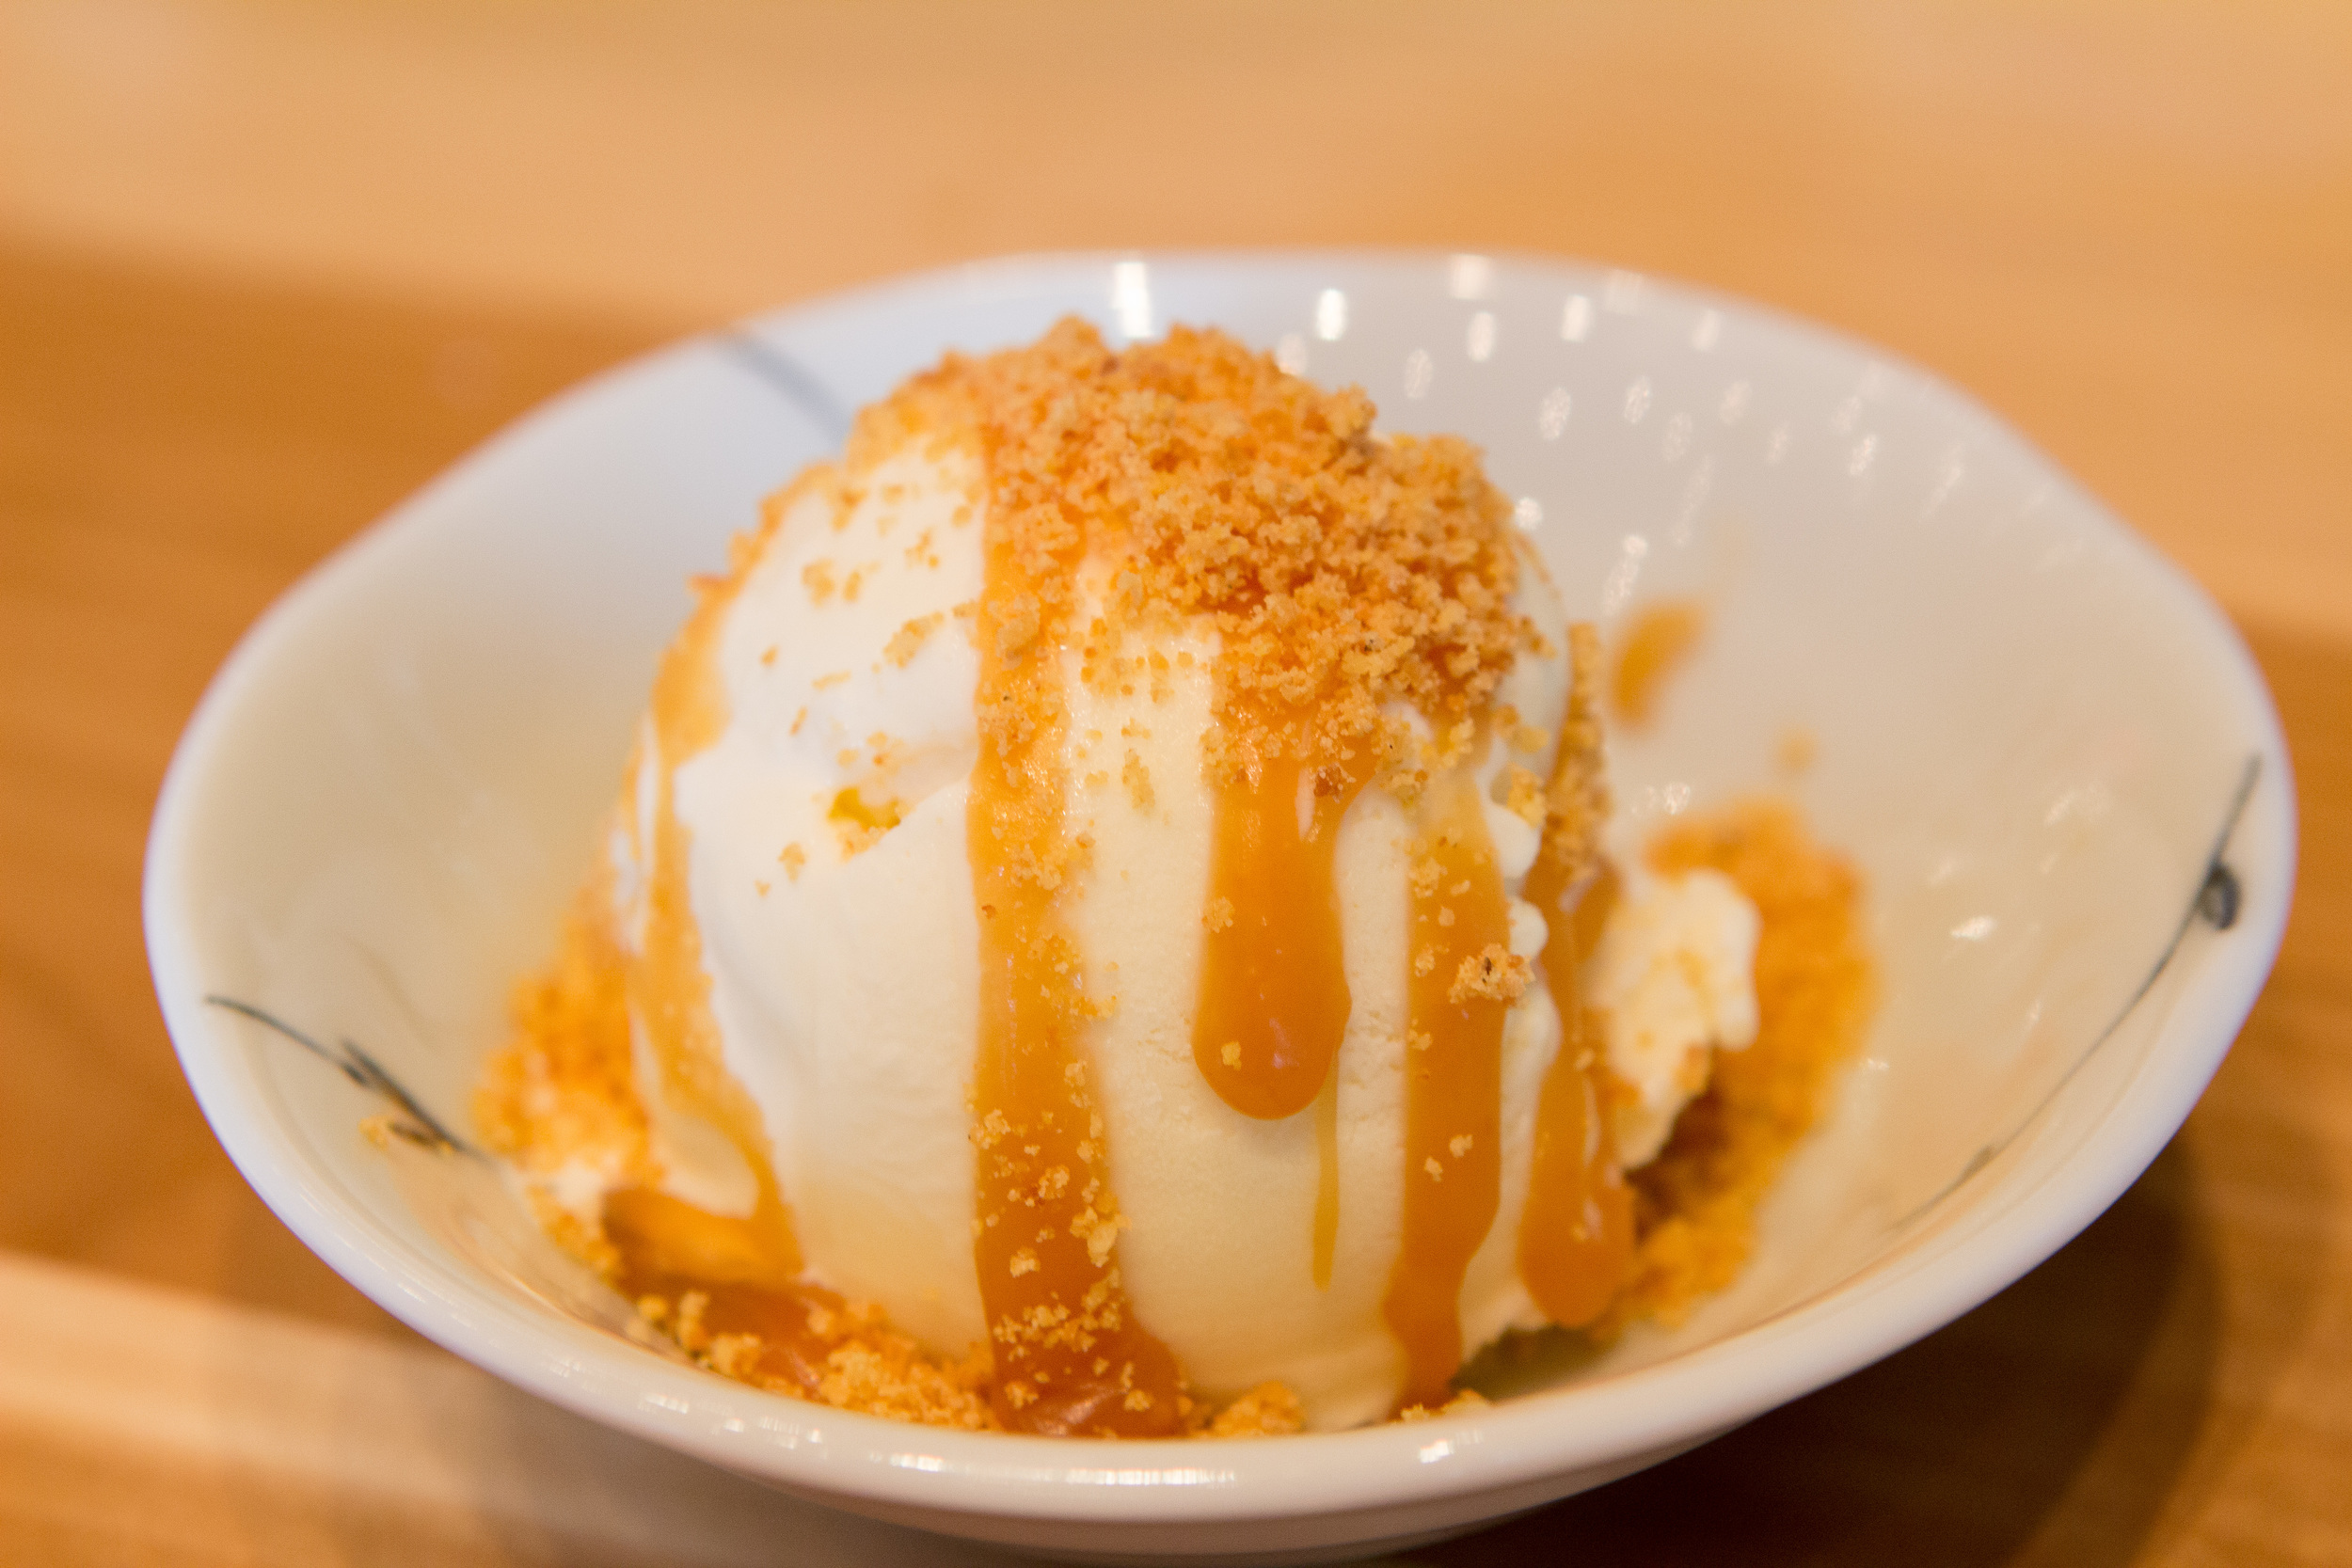 Kettle Corn Ice Cream with Miso Caramel